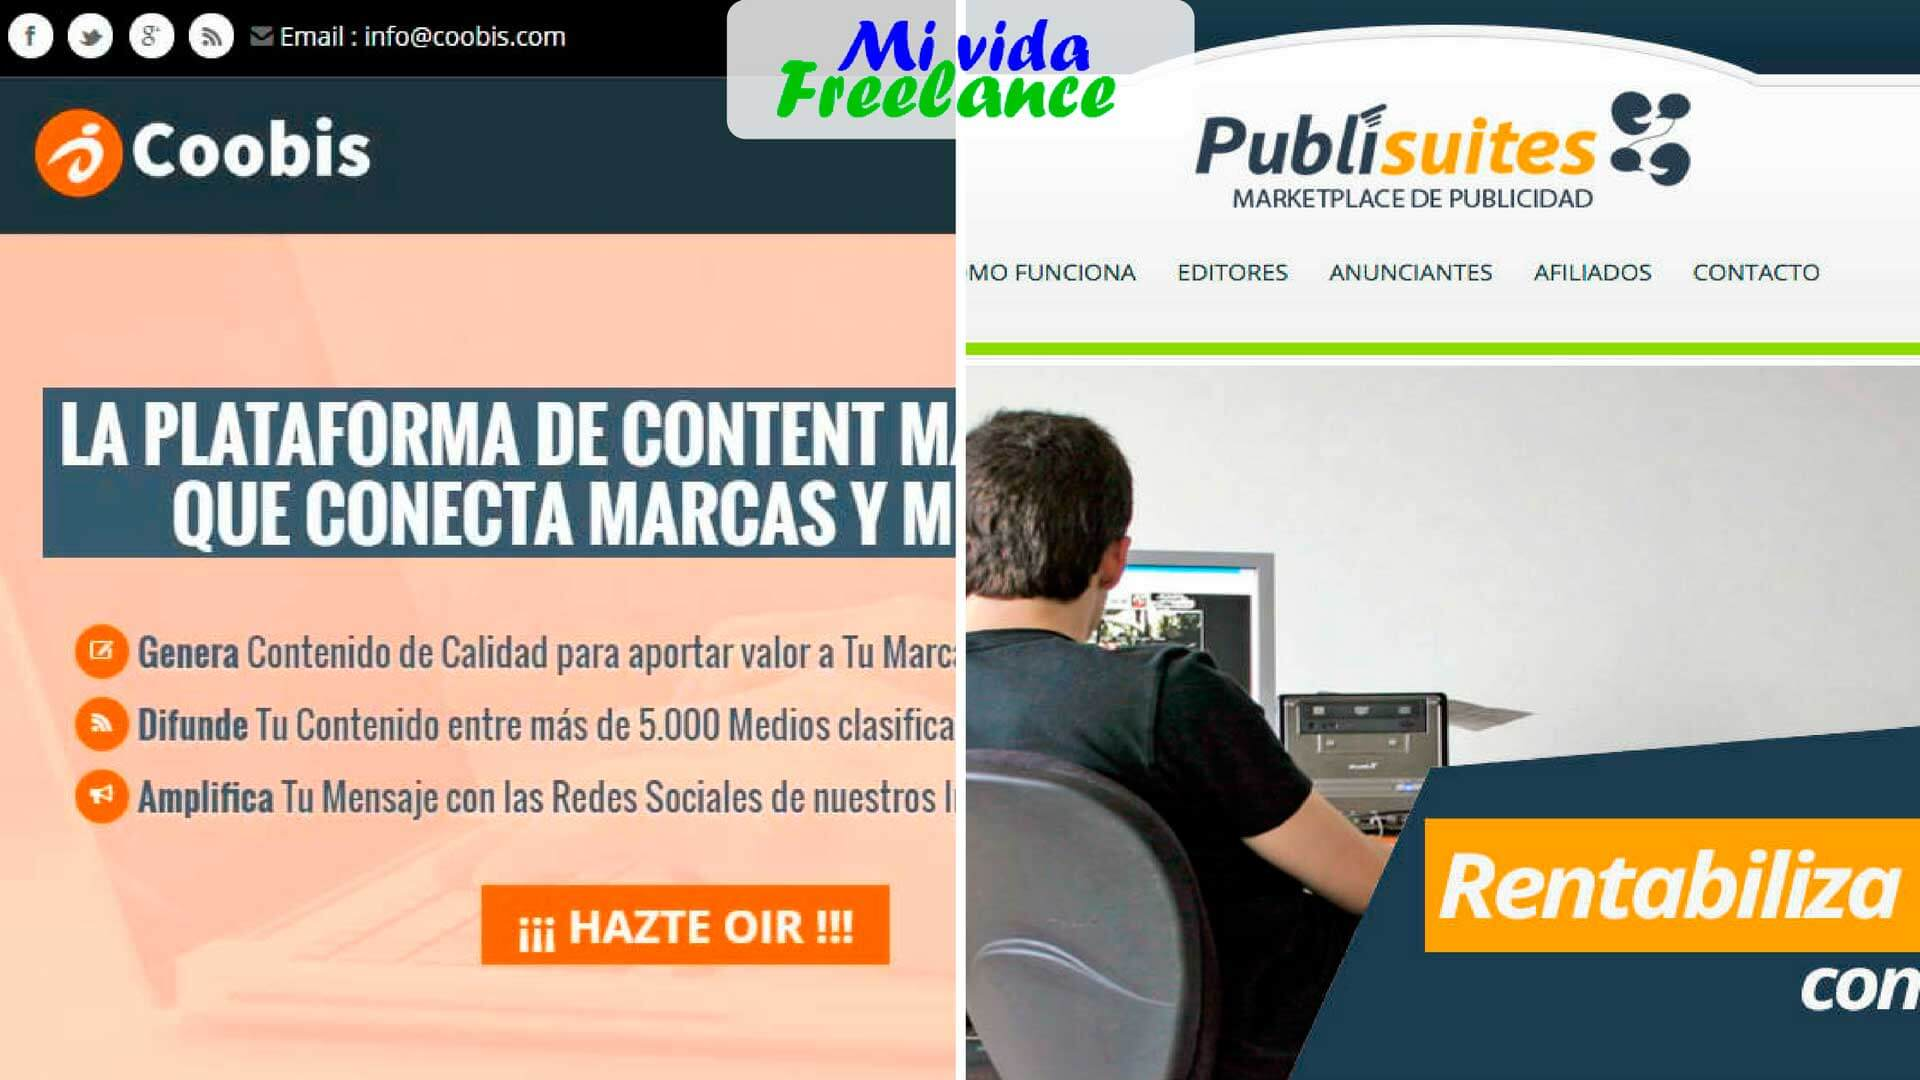 Coobis-vs-Publisuites-mi-vida-freelance